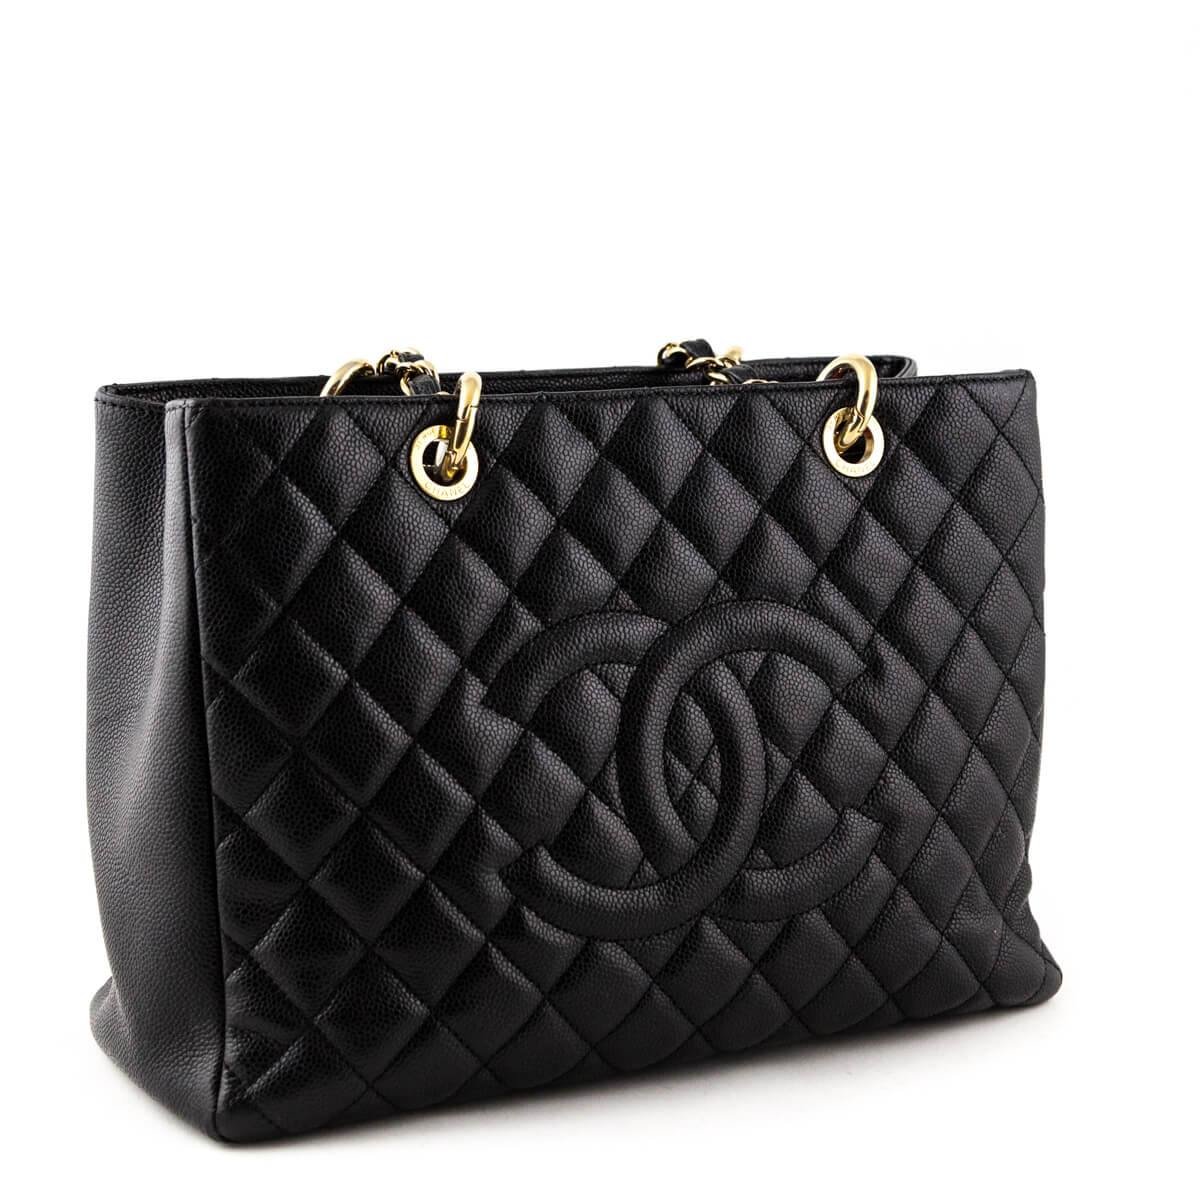 c82a5f217809 ... Chanel Black Caviar Grand Shopping Tote GST GHW - LOVE that BAG -  Preowned Authentic Designer ...